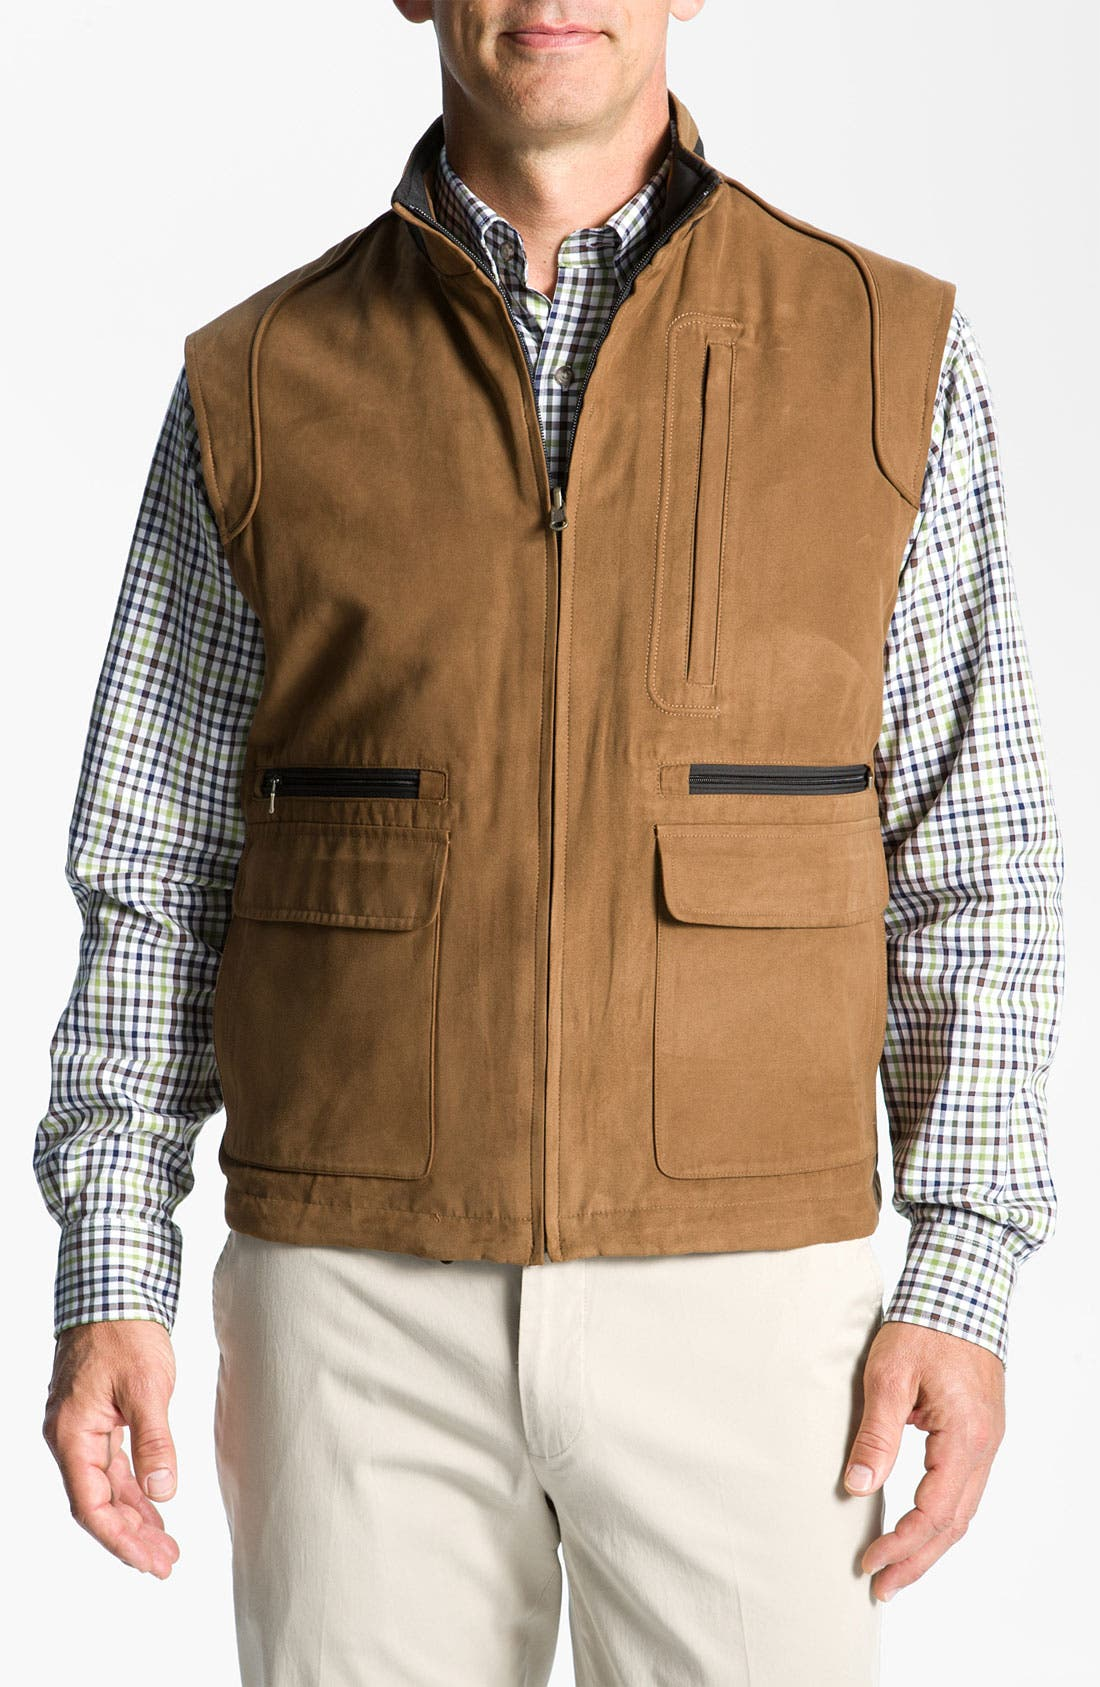 Main Image - Cutter & Buck 'Preston' Reversible Vest (Big & Tall) (Online Exclusive)